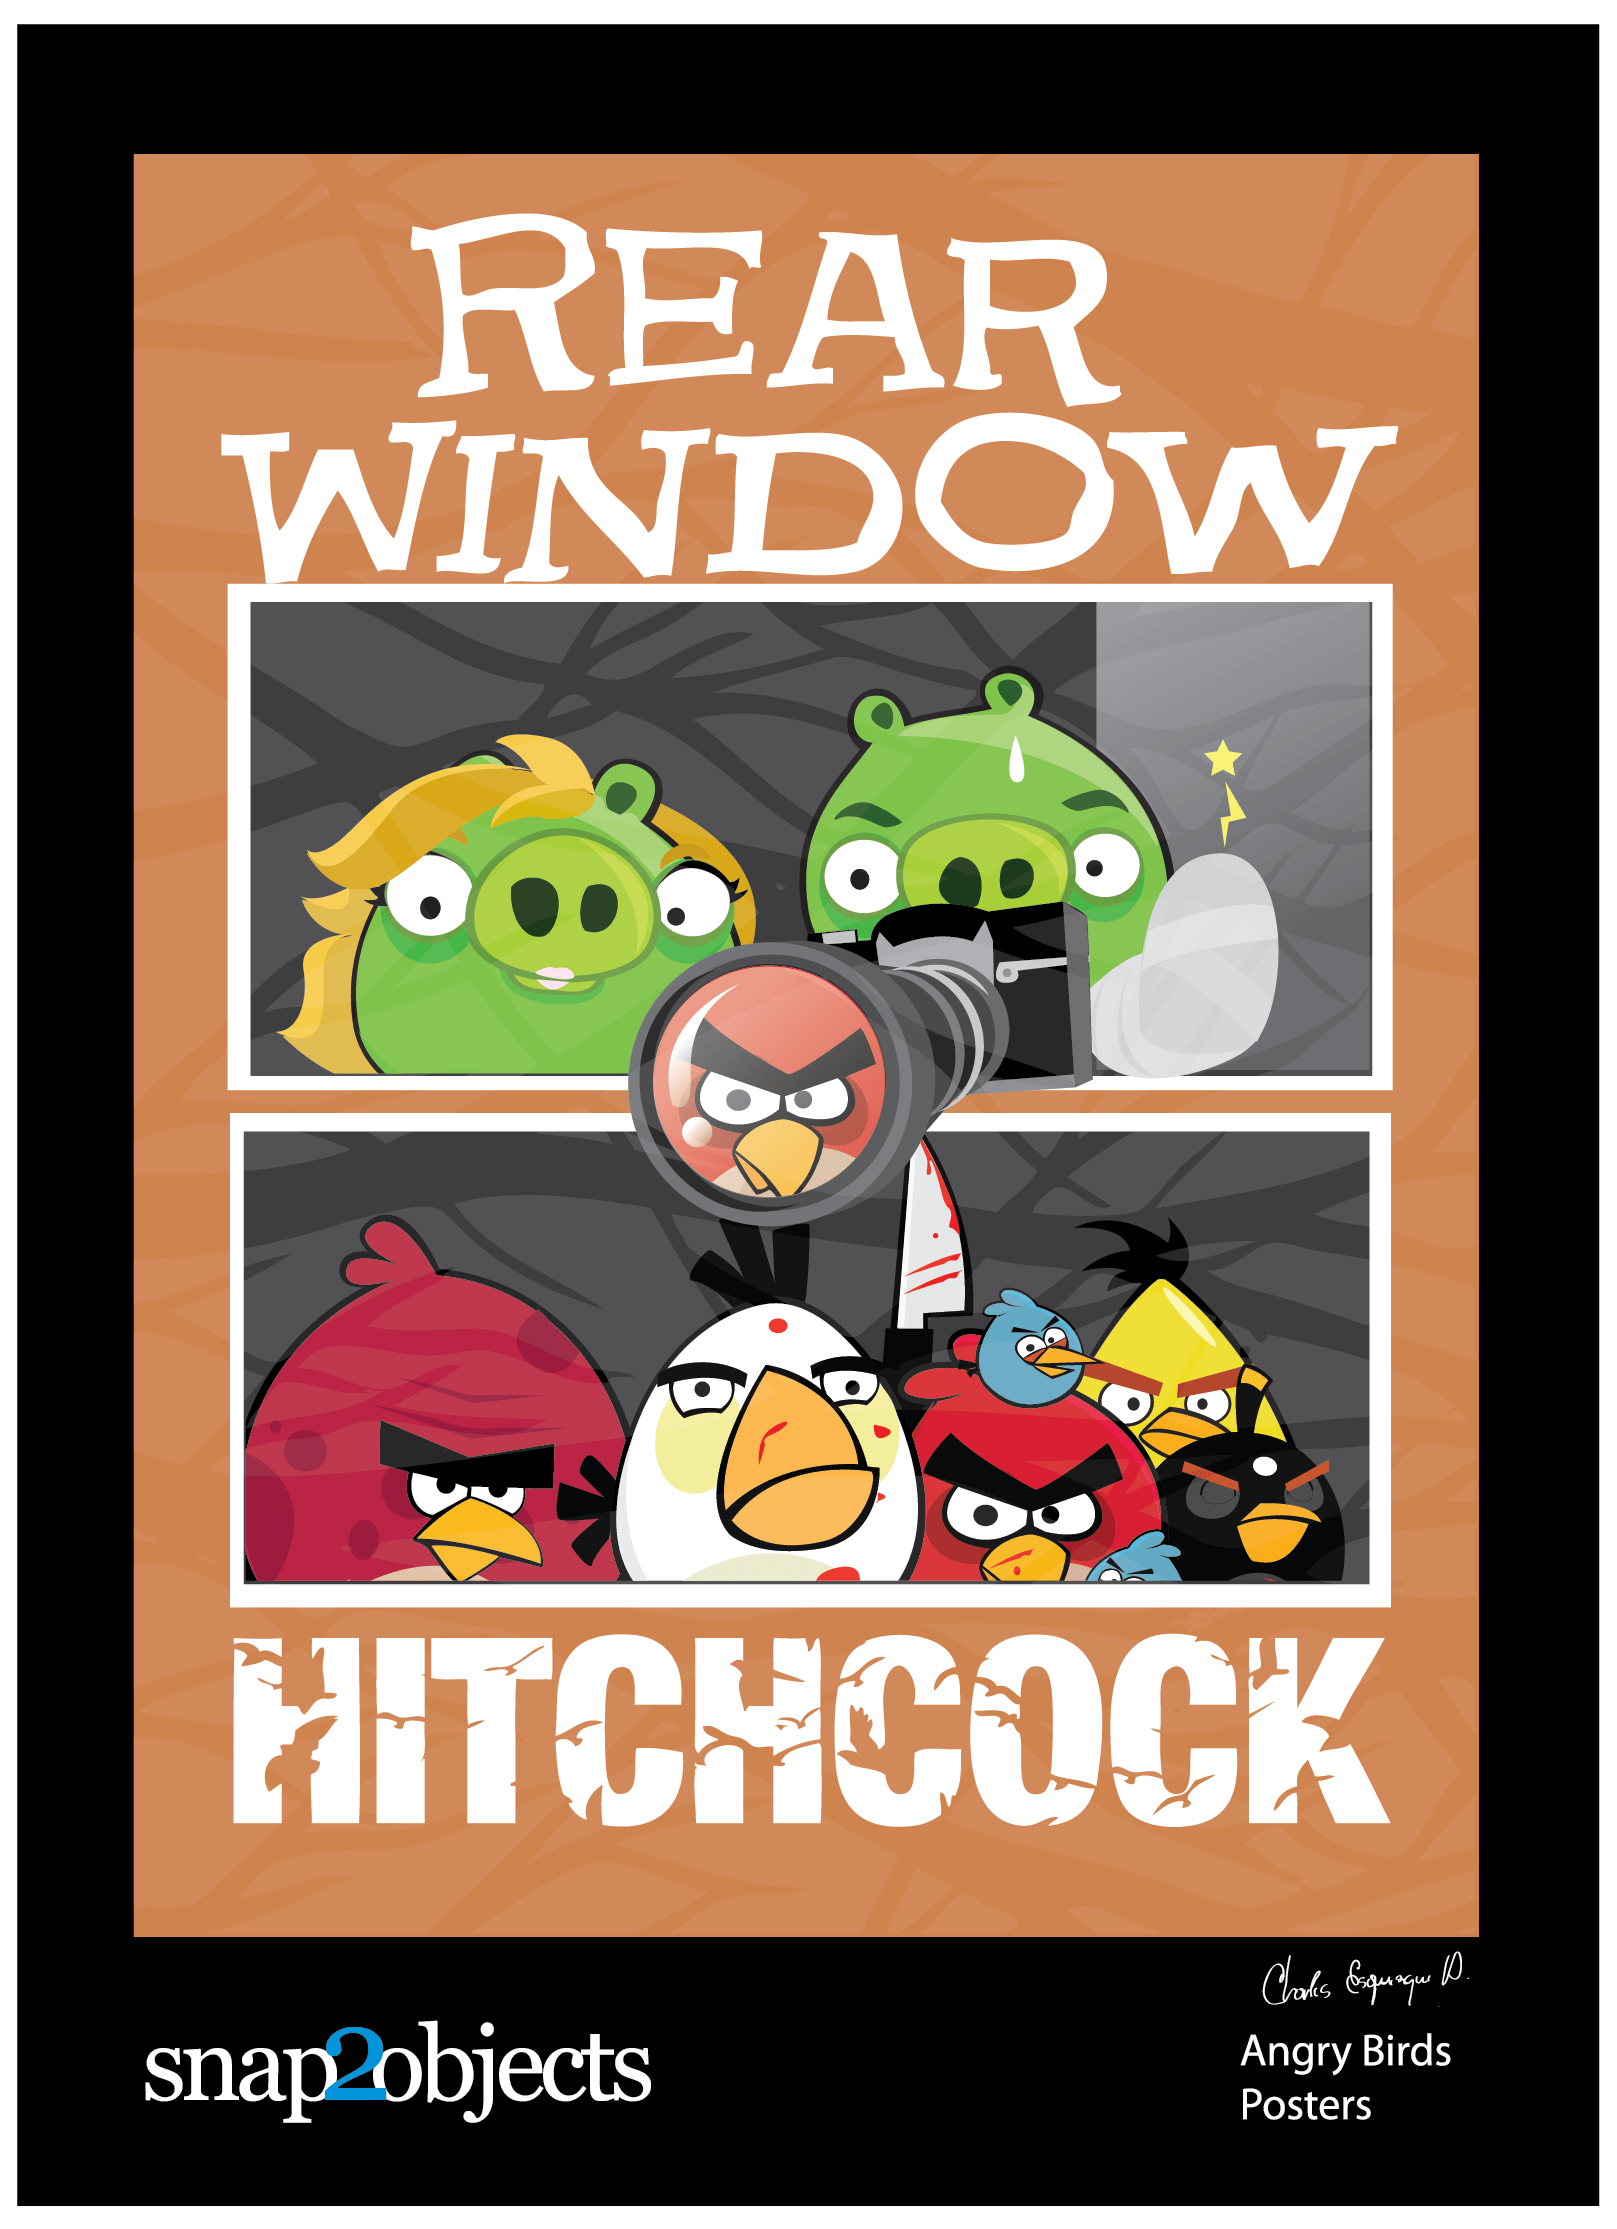 hitchcock   angry birds posters